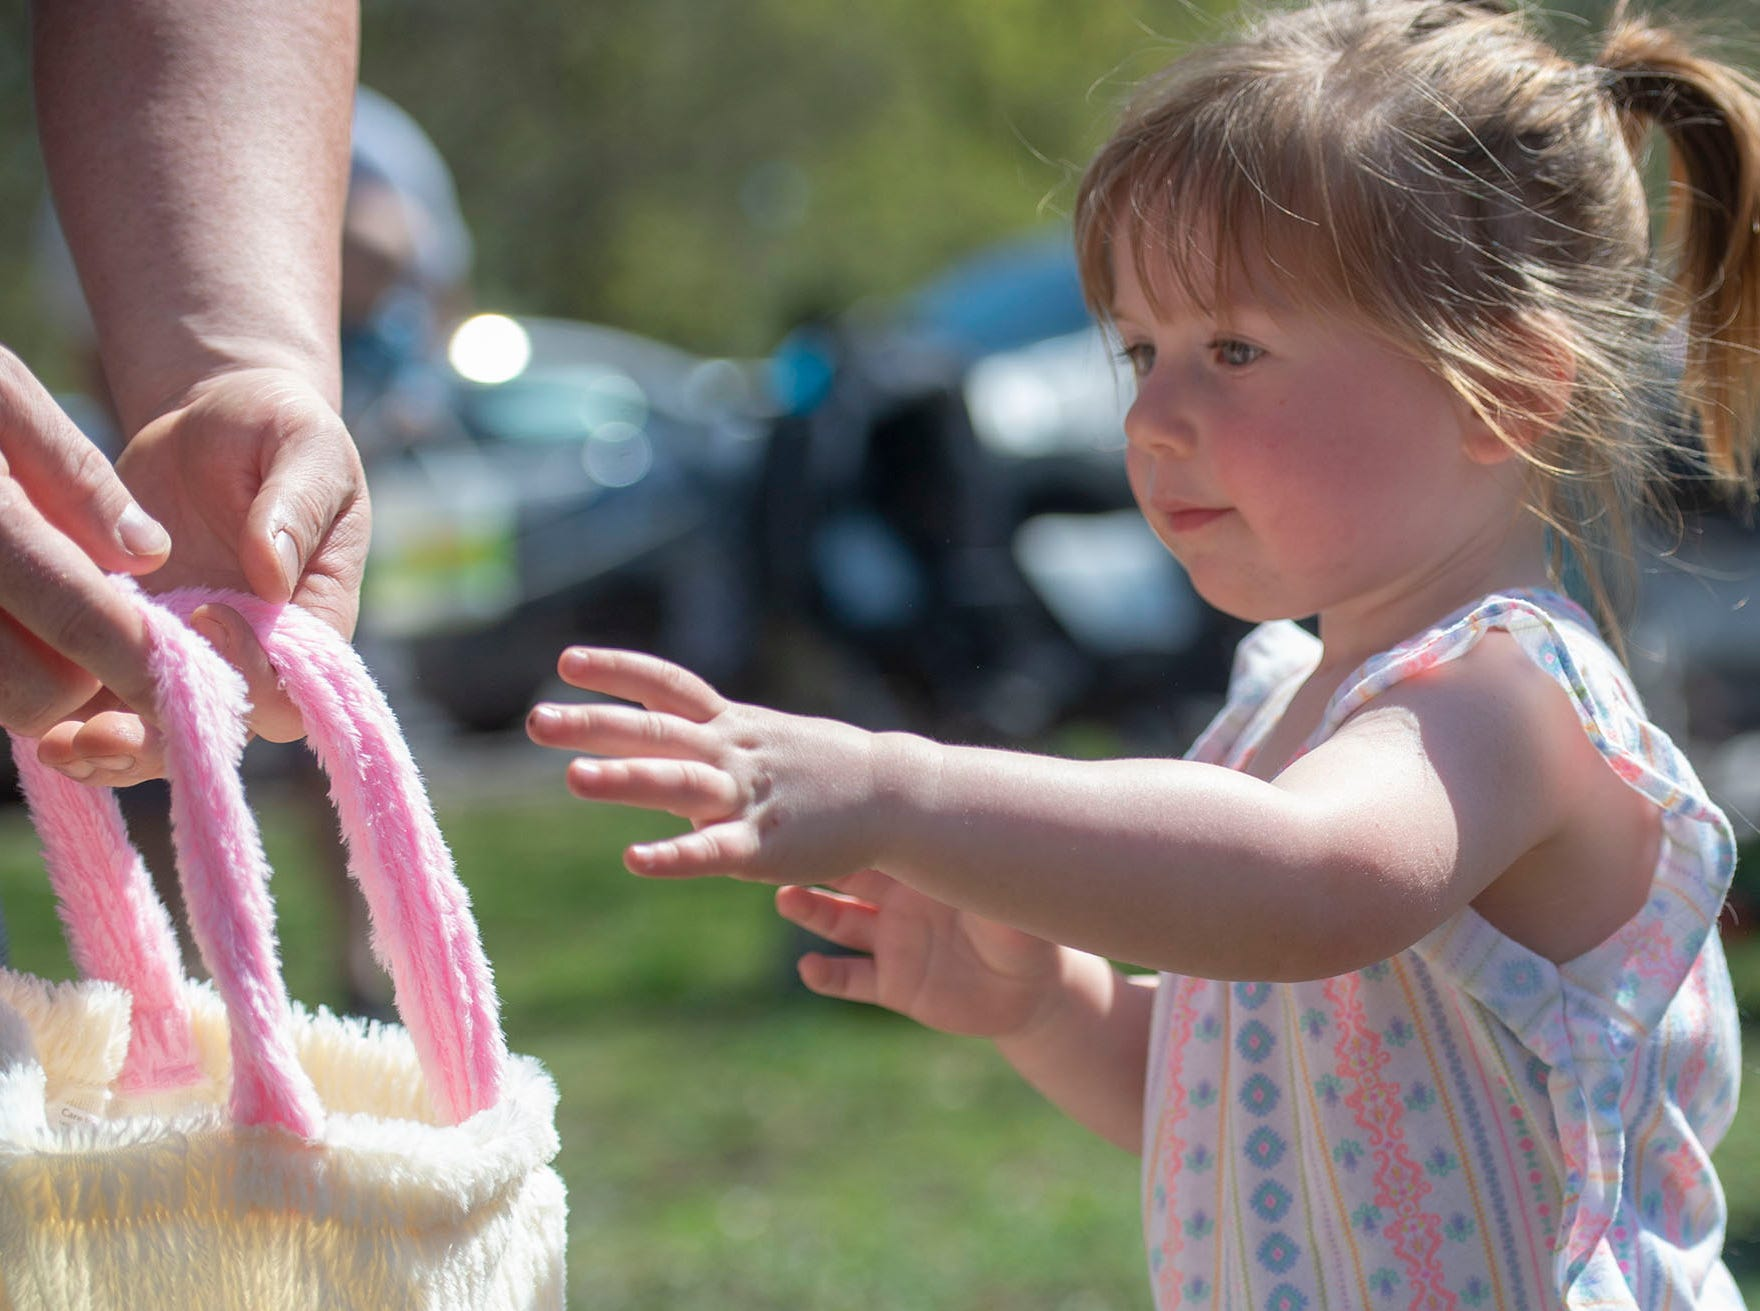 A participant reaches out to check out her goodies at the City of York's Easter Egg Hunt at Kiwanis Lake on Saturday, April 13, 2019.